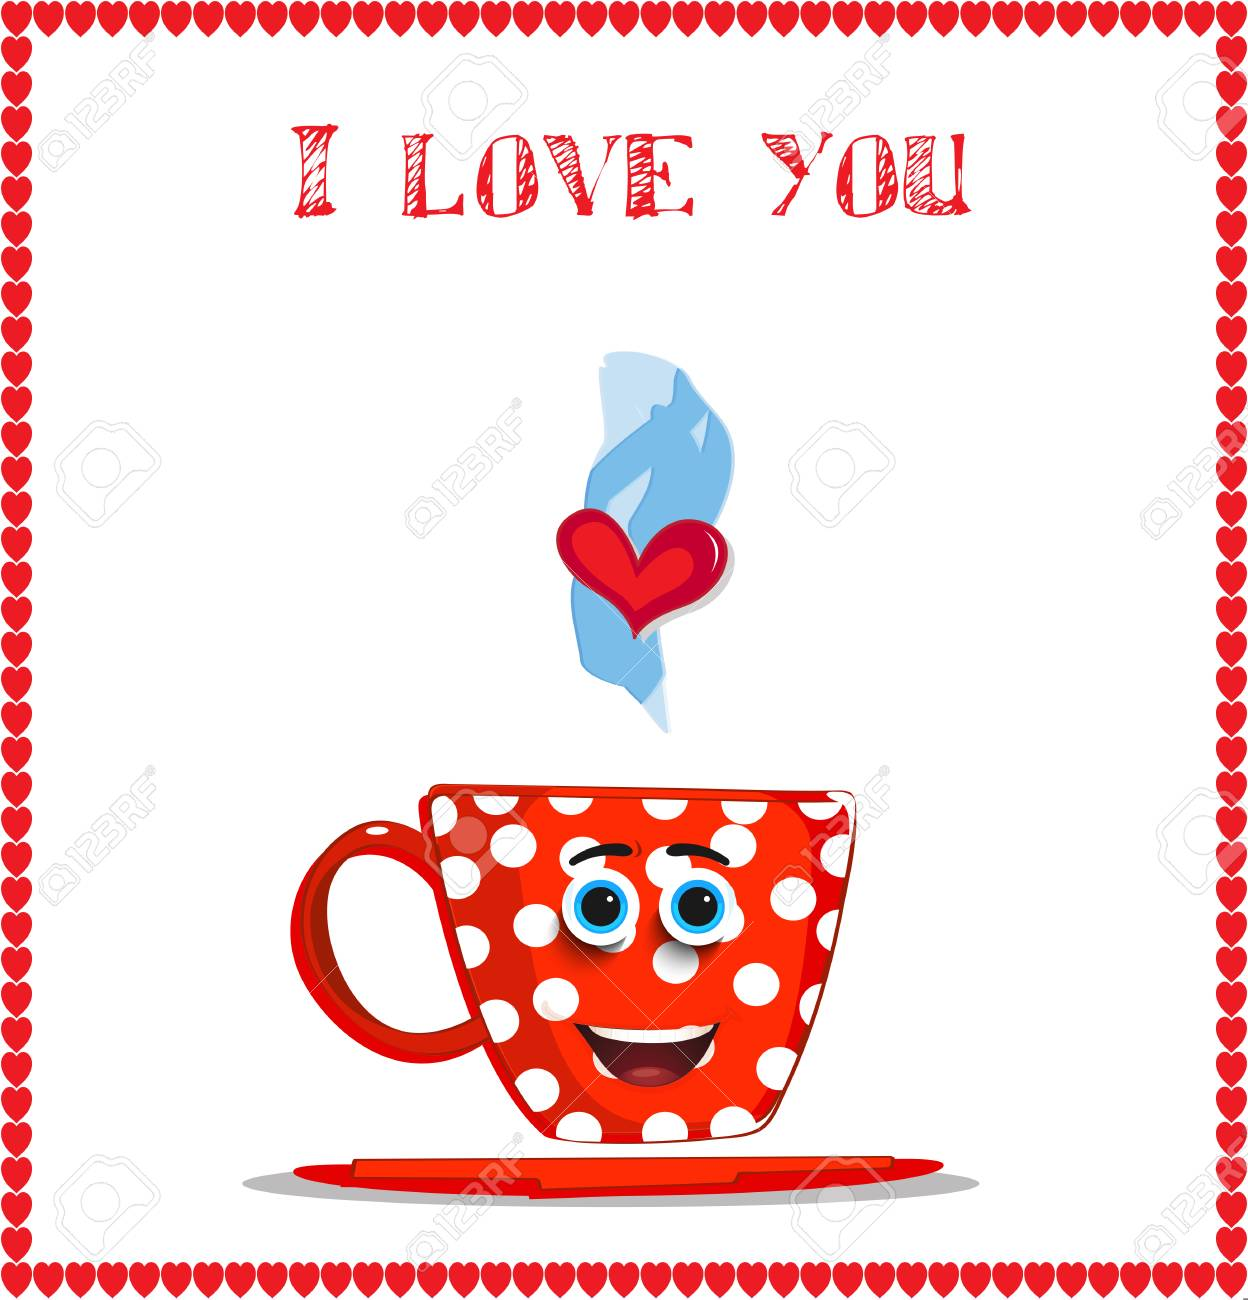 I Love You Card With Cute Smiling Red Mug With White Polka Dots ...